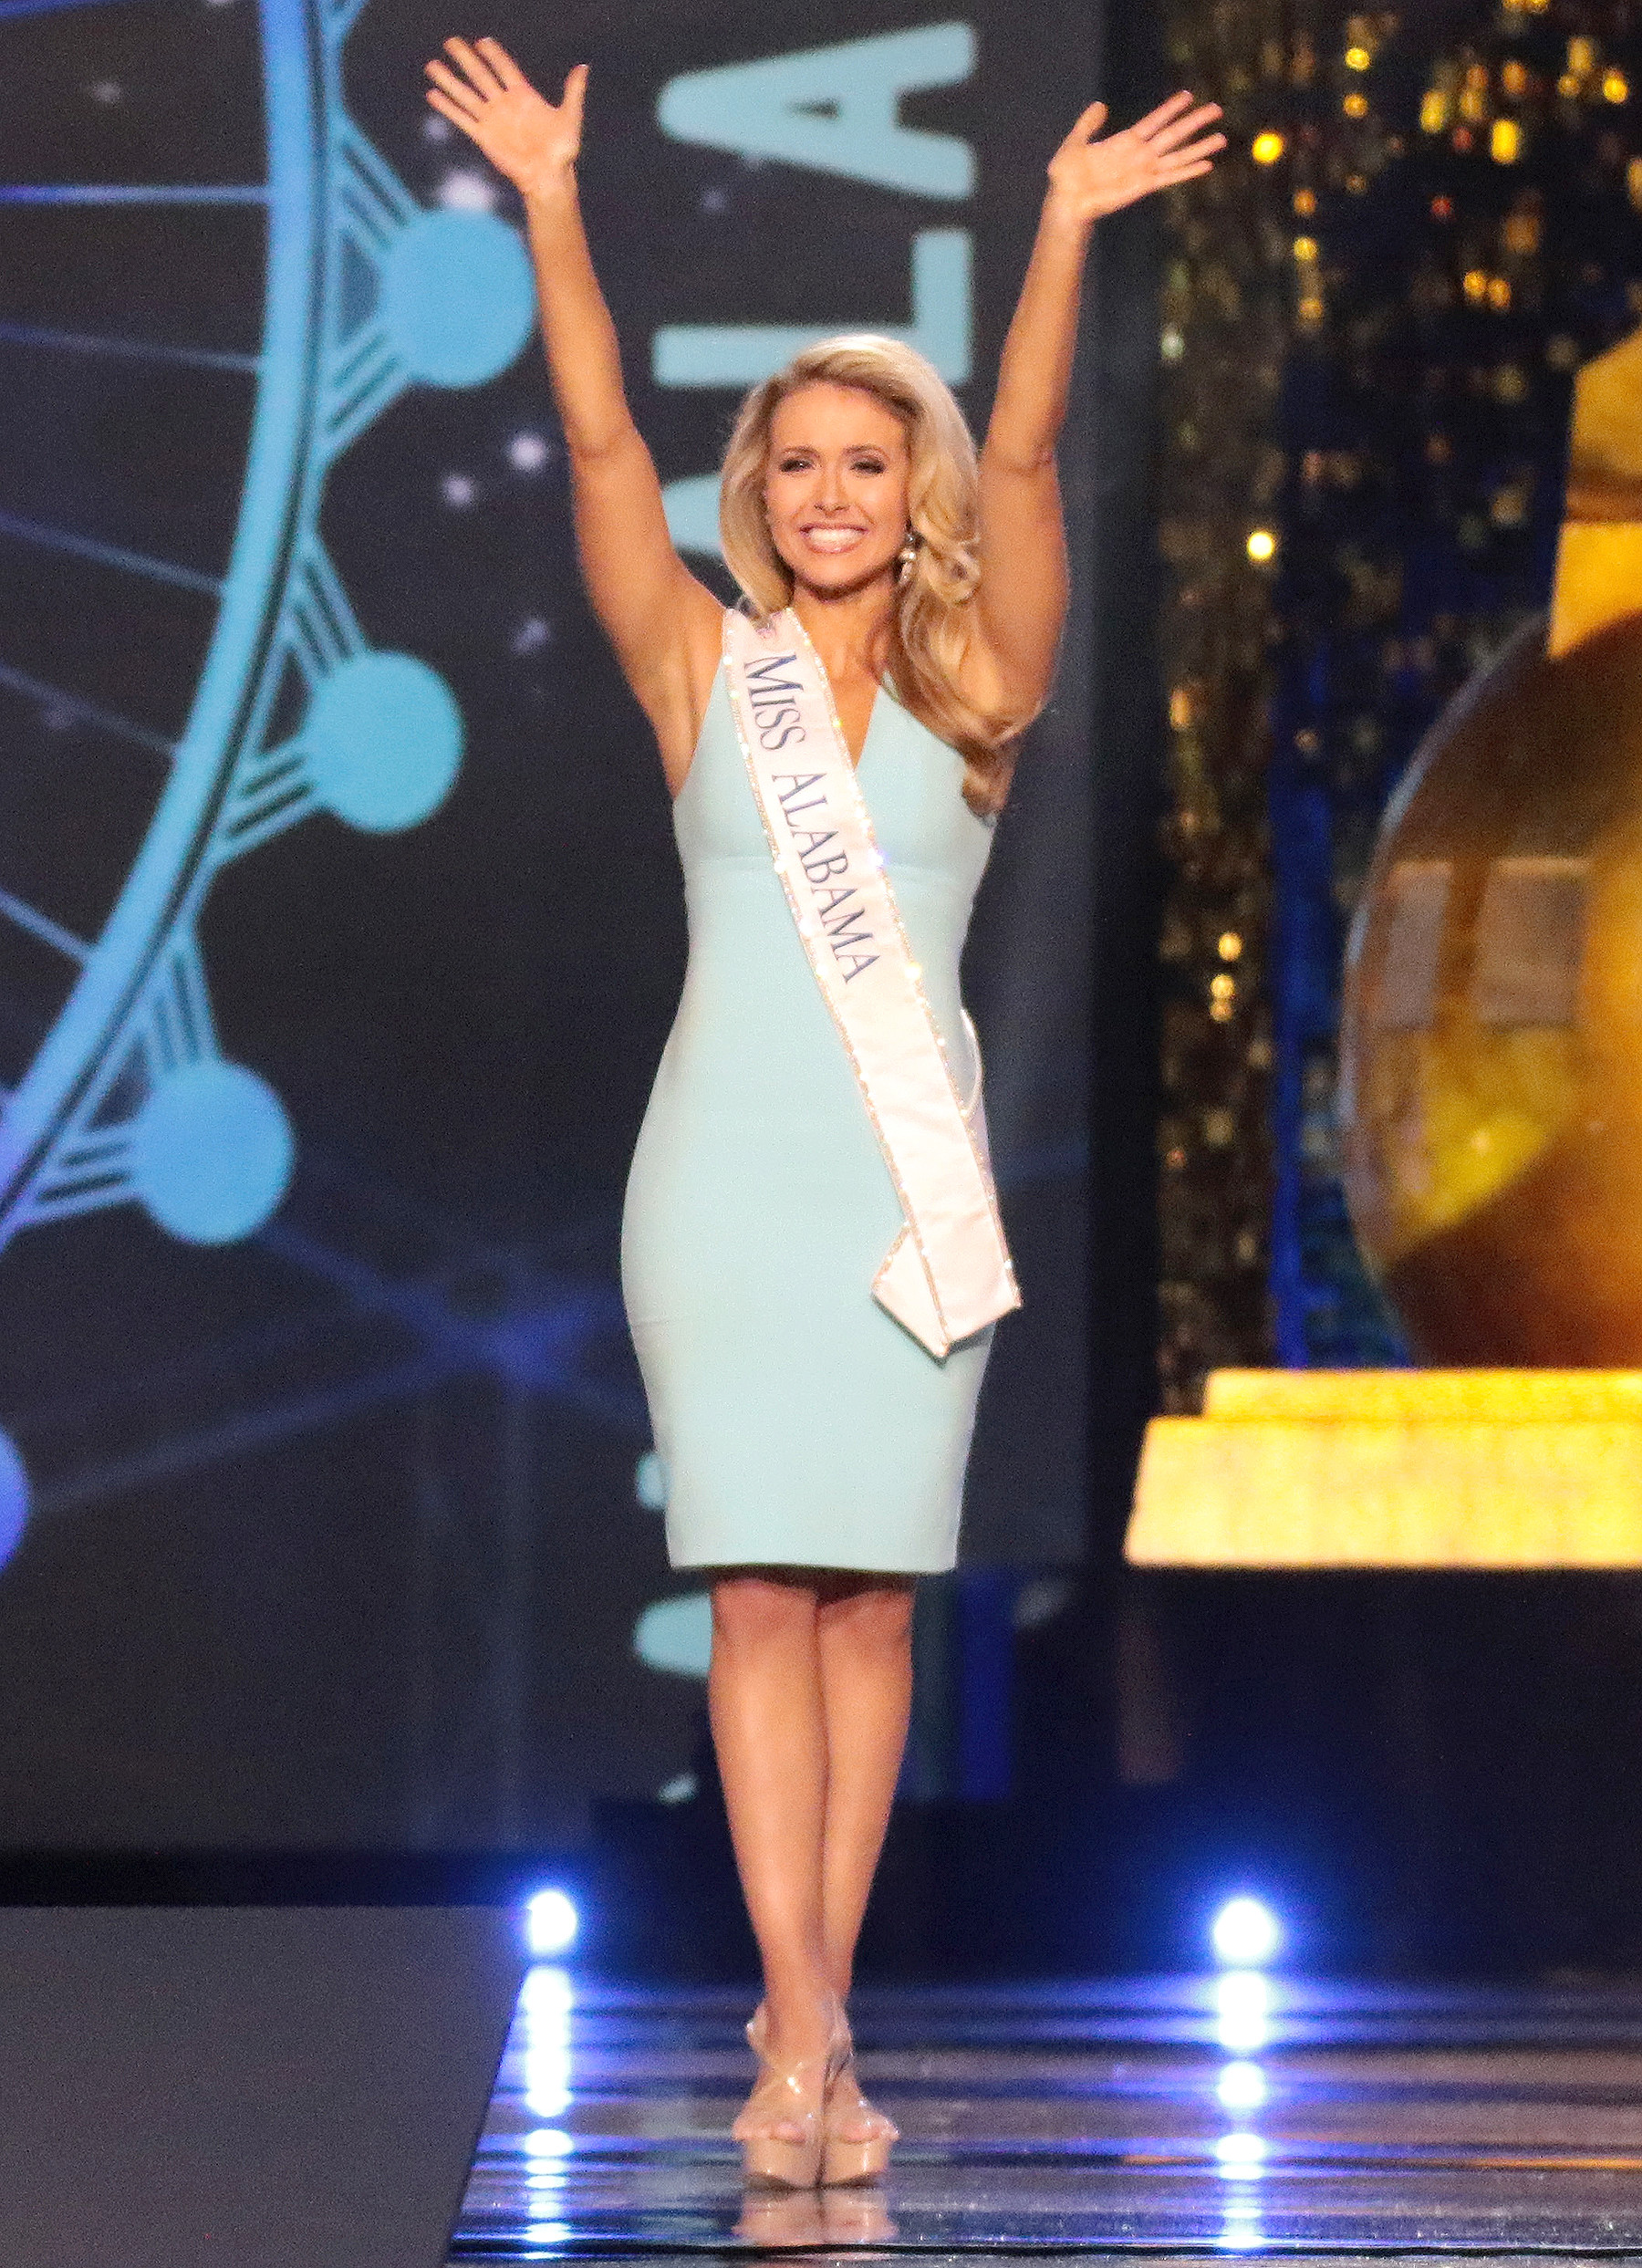 Sorry, Chris Harrison: Miss Alabama Doesn't Want to Be The Bachelorette